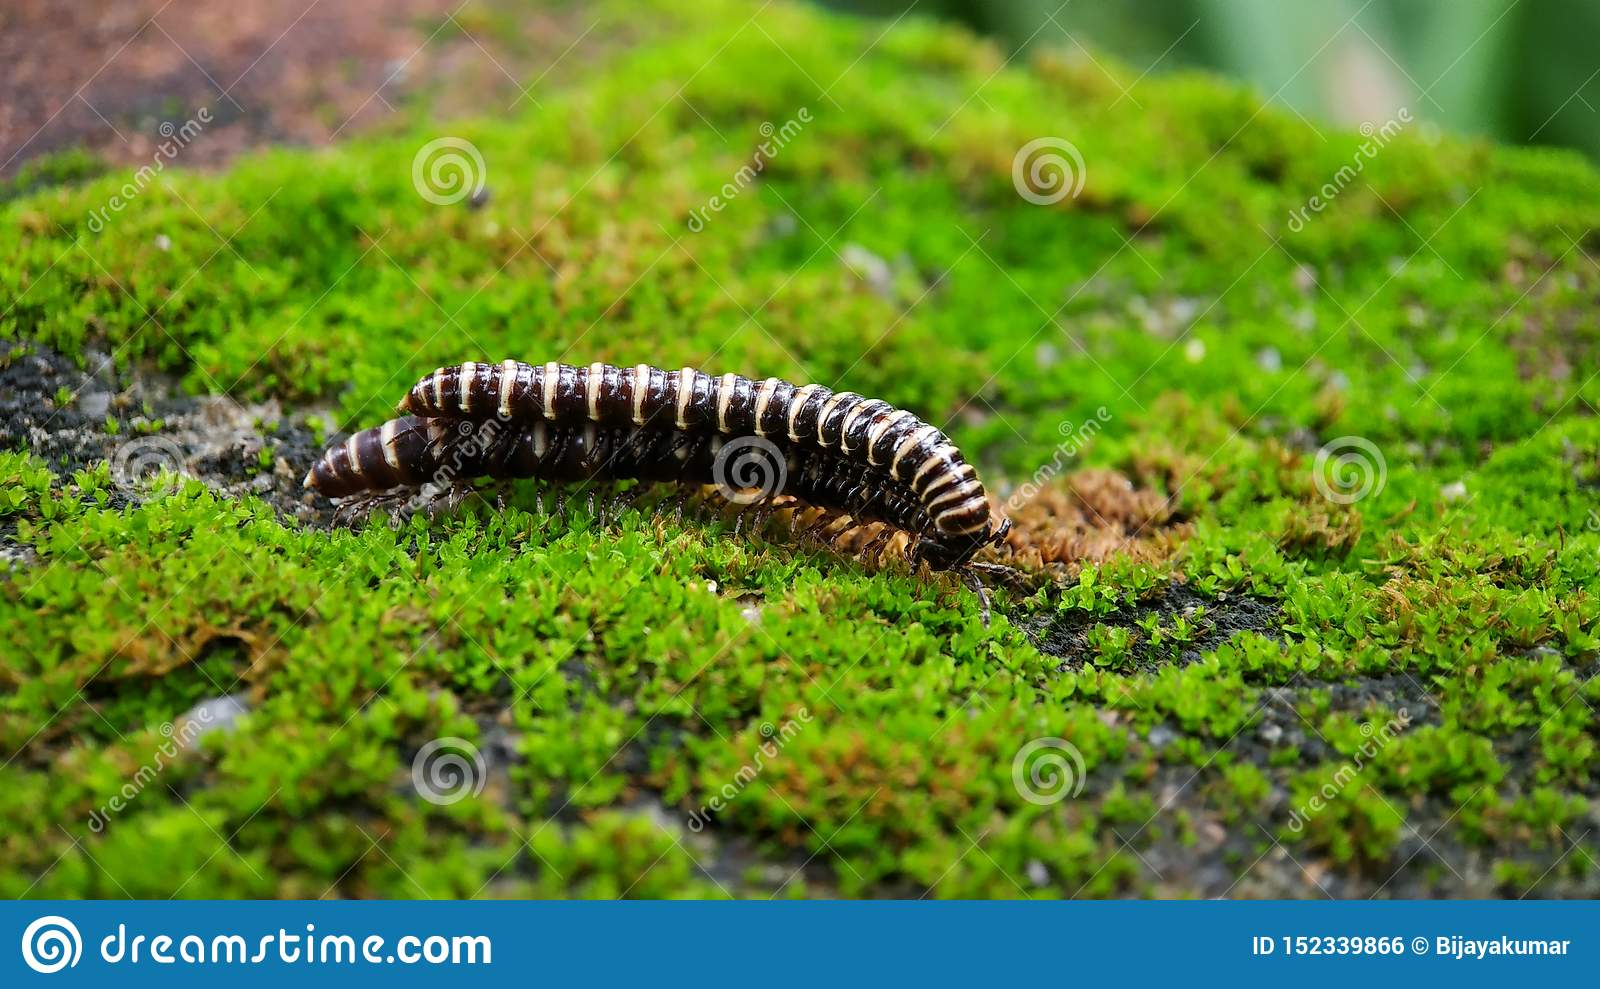 Male and Female 2 - Greenhouse millipede - Oxidus gracilis mating with each other - with green algae background on wall